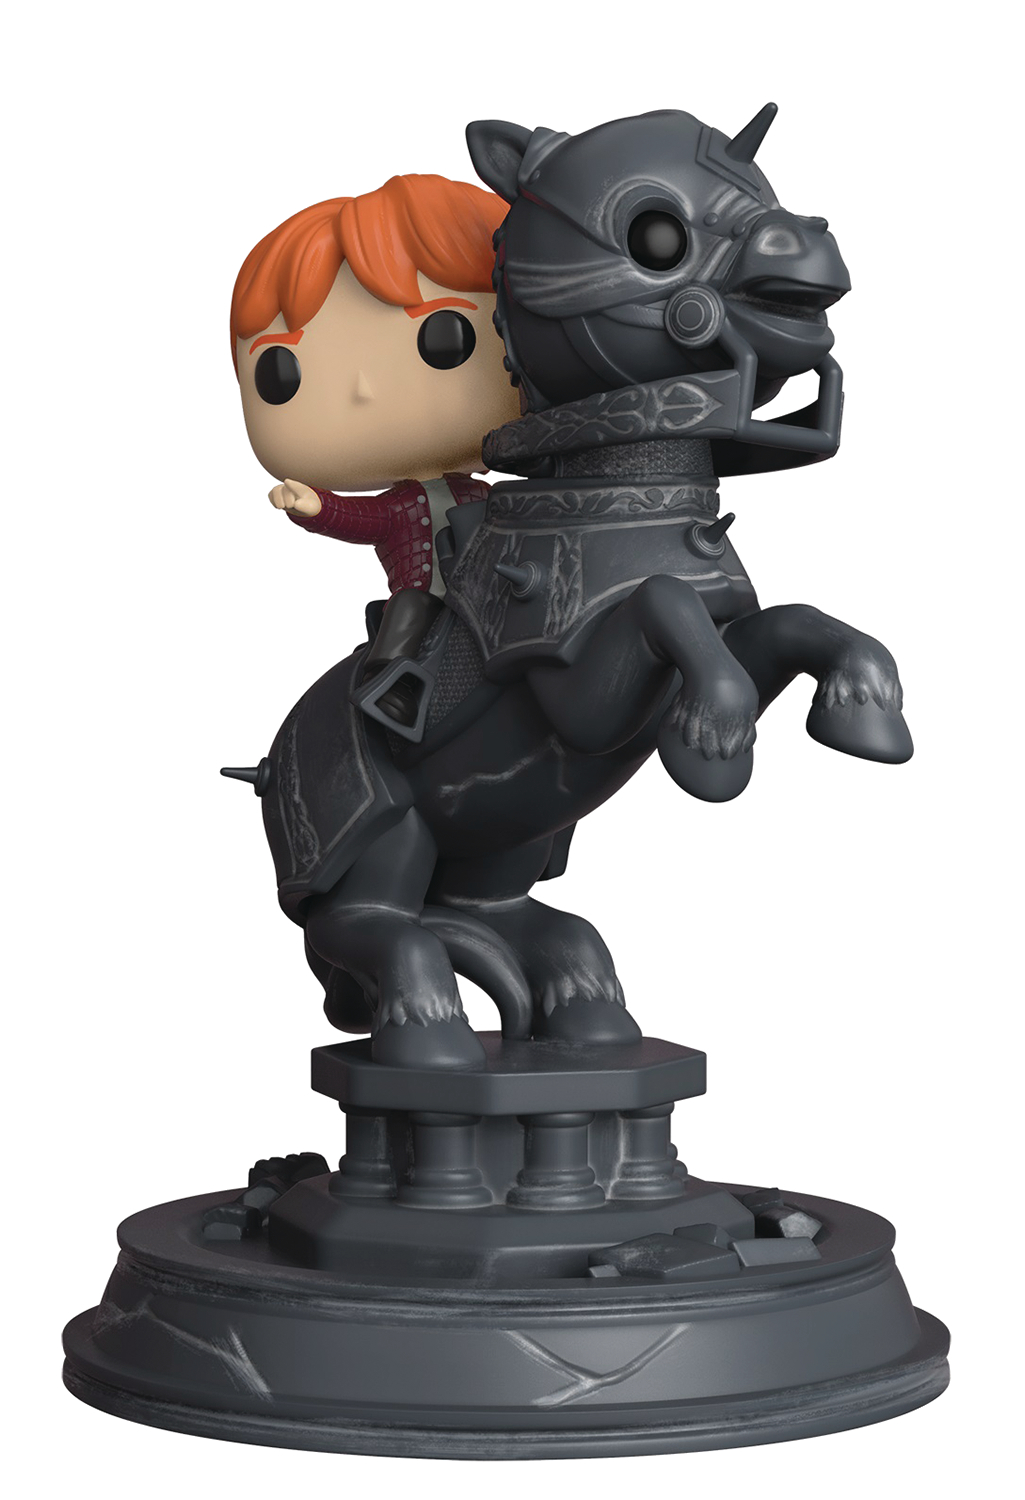 POP MOVIE MOMENT HARRY POTTER S5 RON & CHESS PIECE VIN FIG (